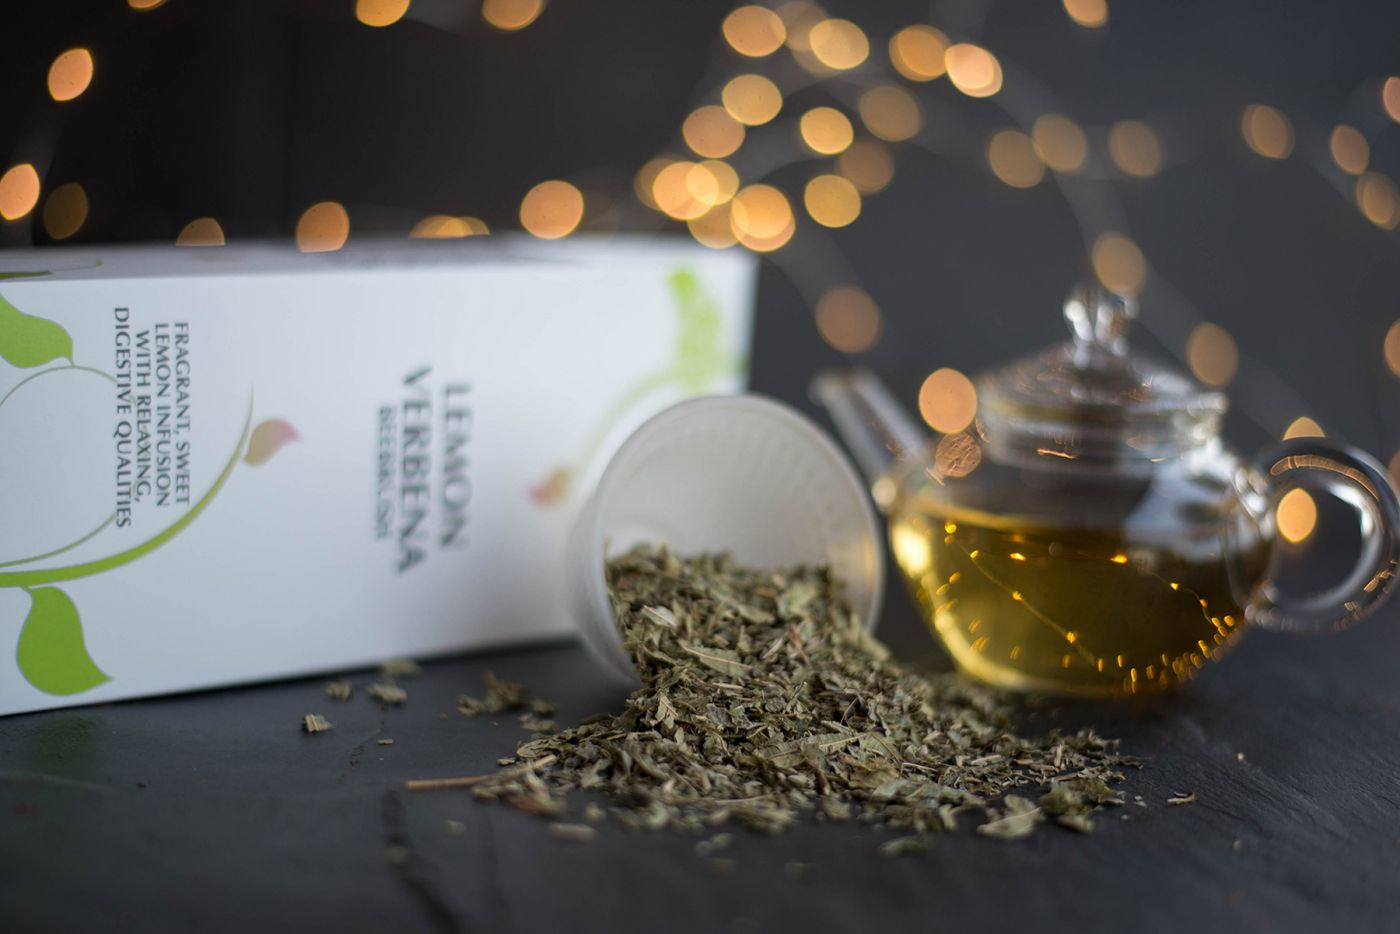 Lemon Verbena Beebrush Herbal Tea